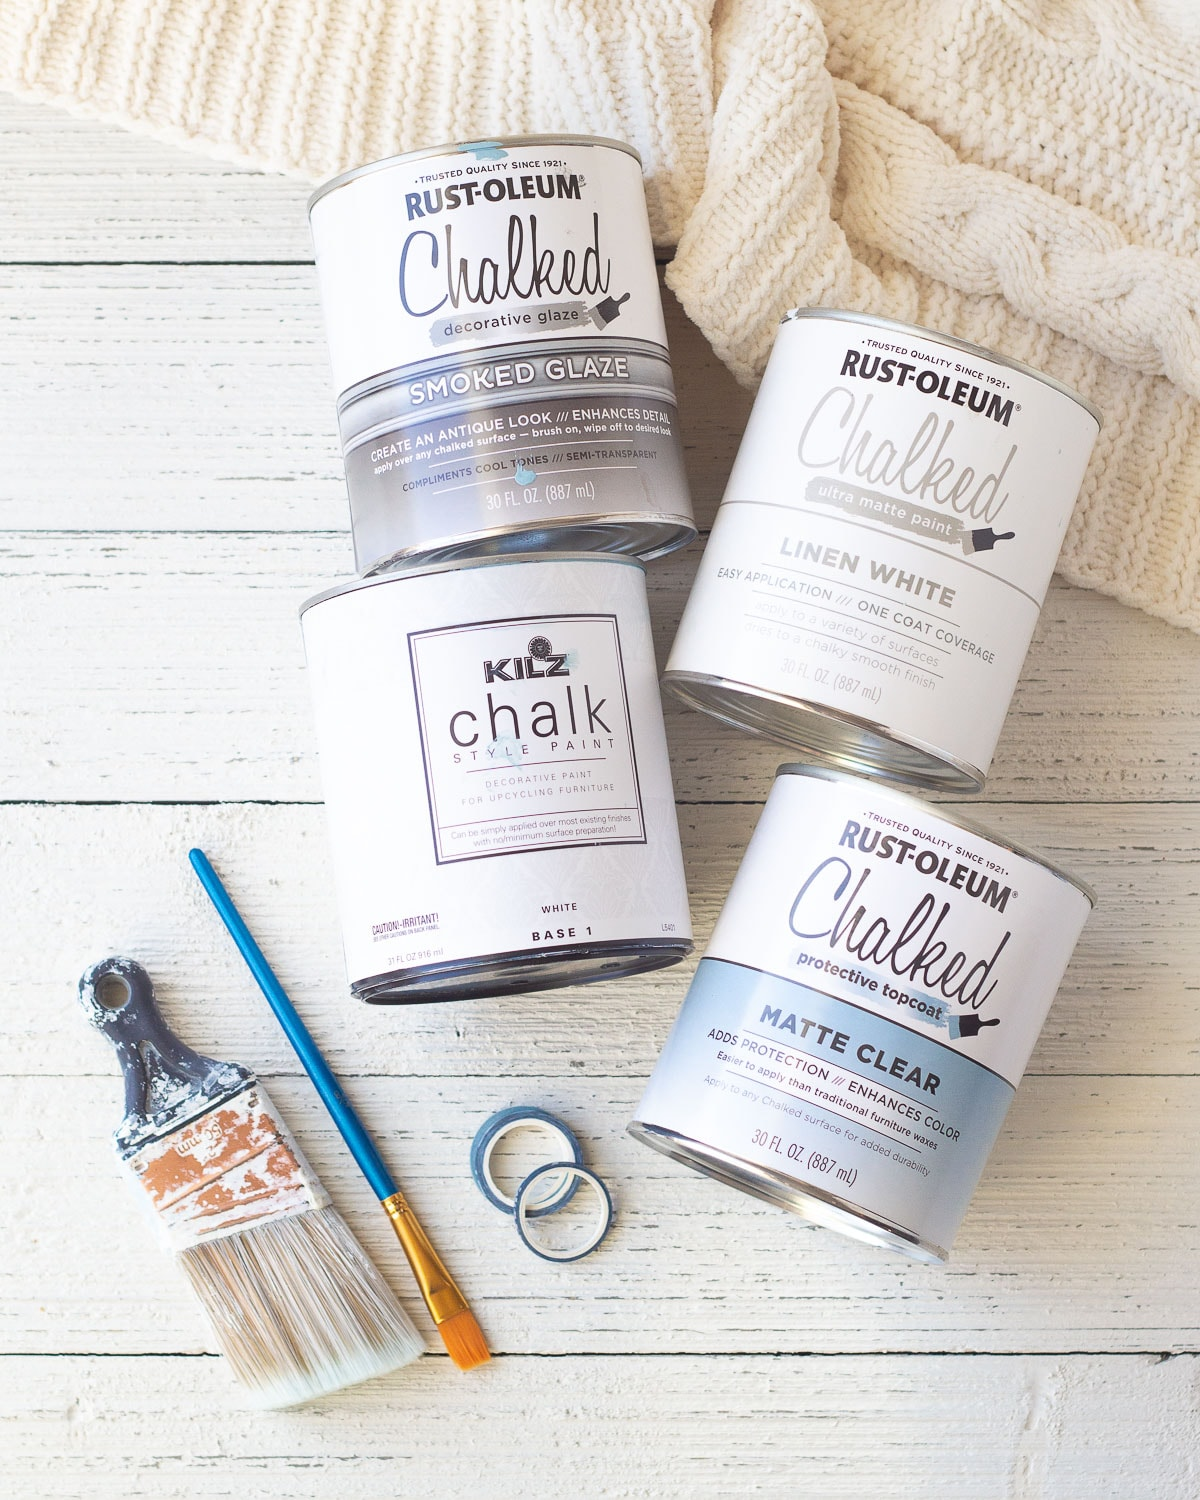 Chalk paint cans, paintbrushes, and washi tape on a wooden surface.